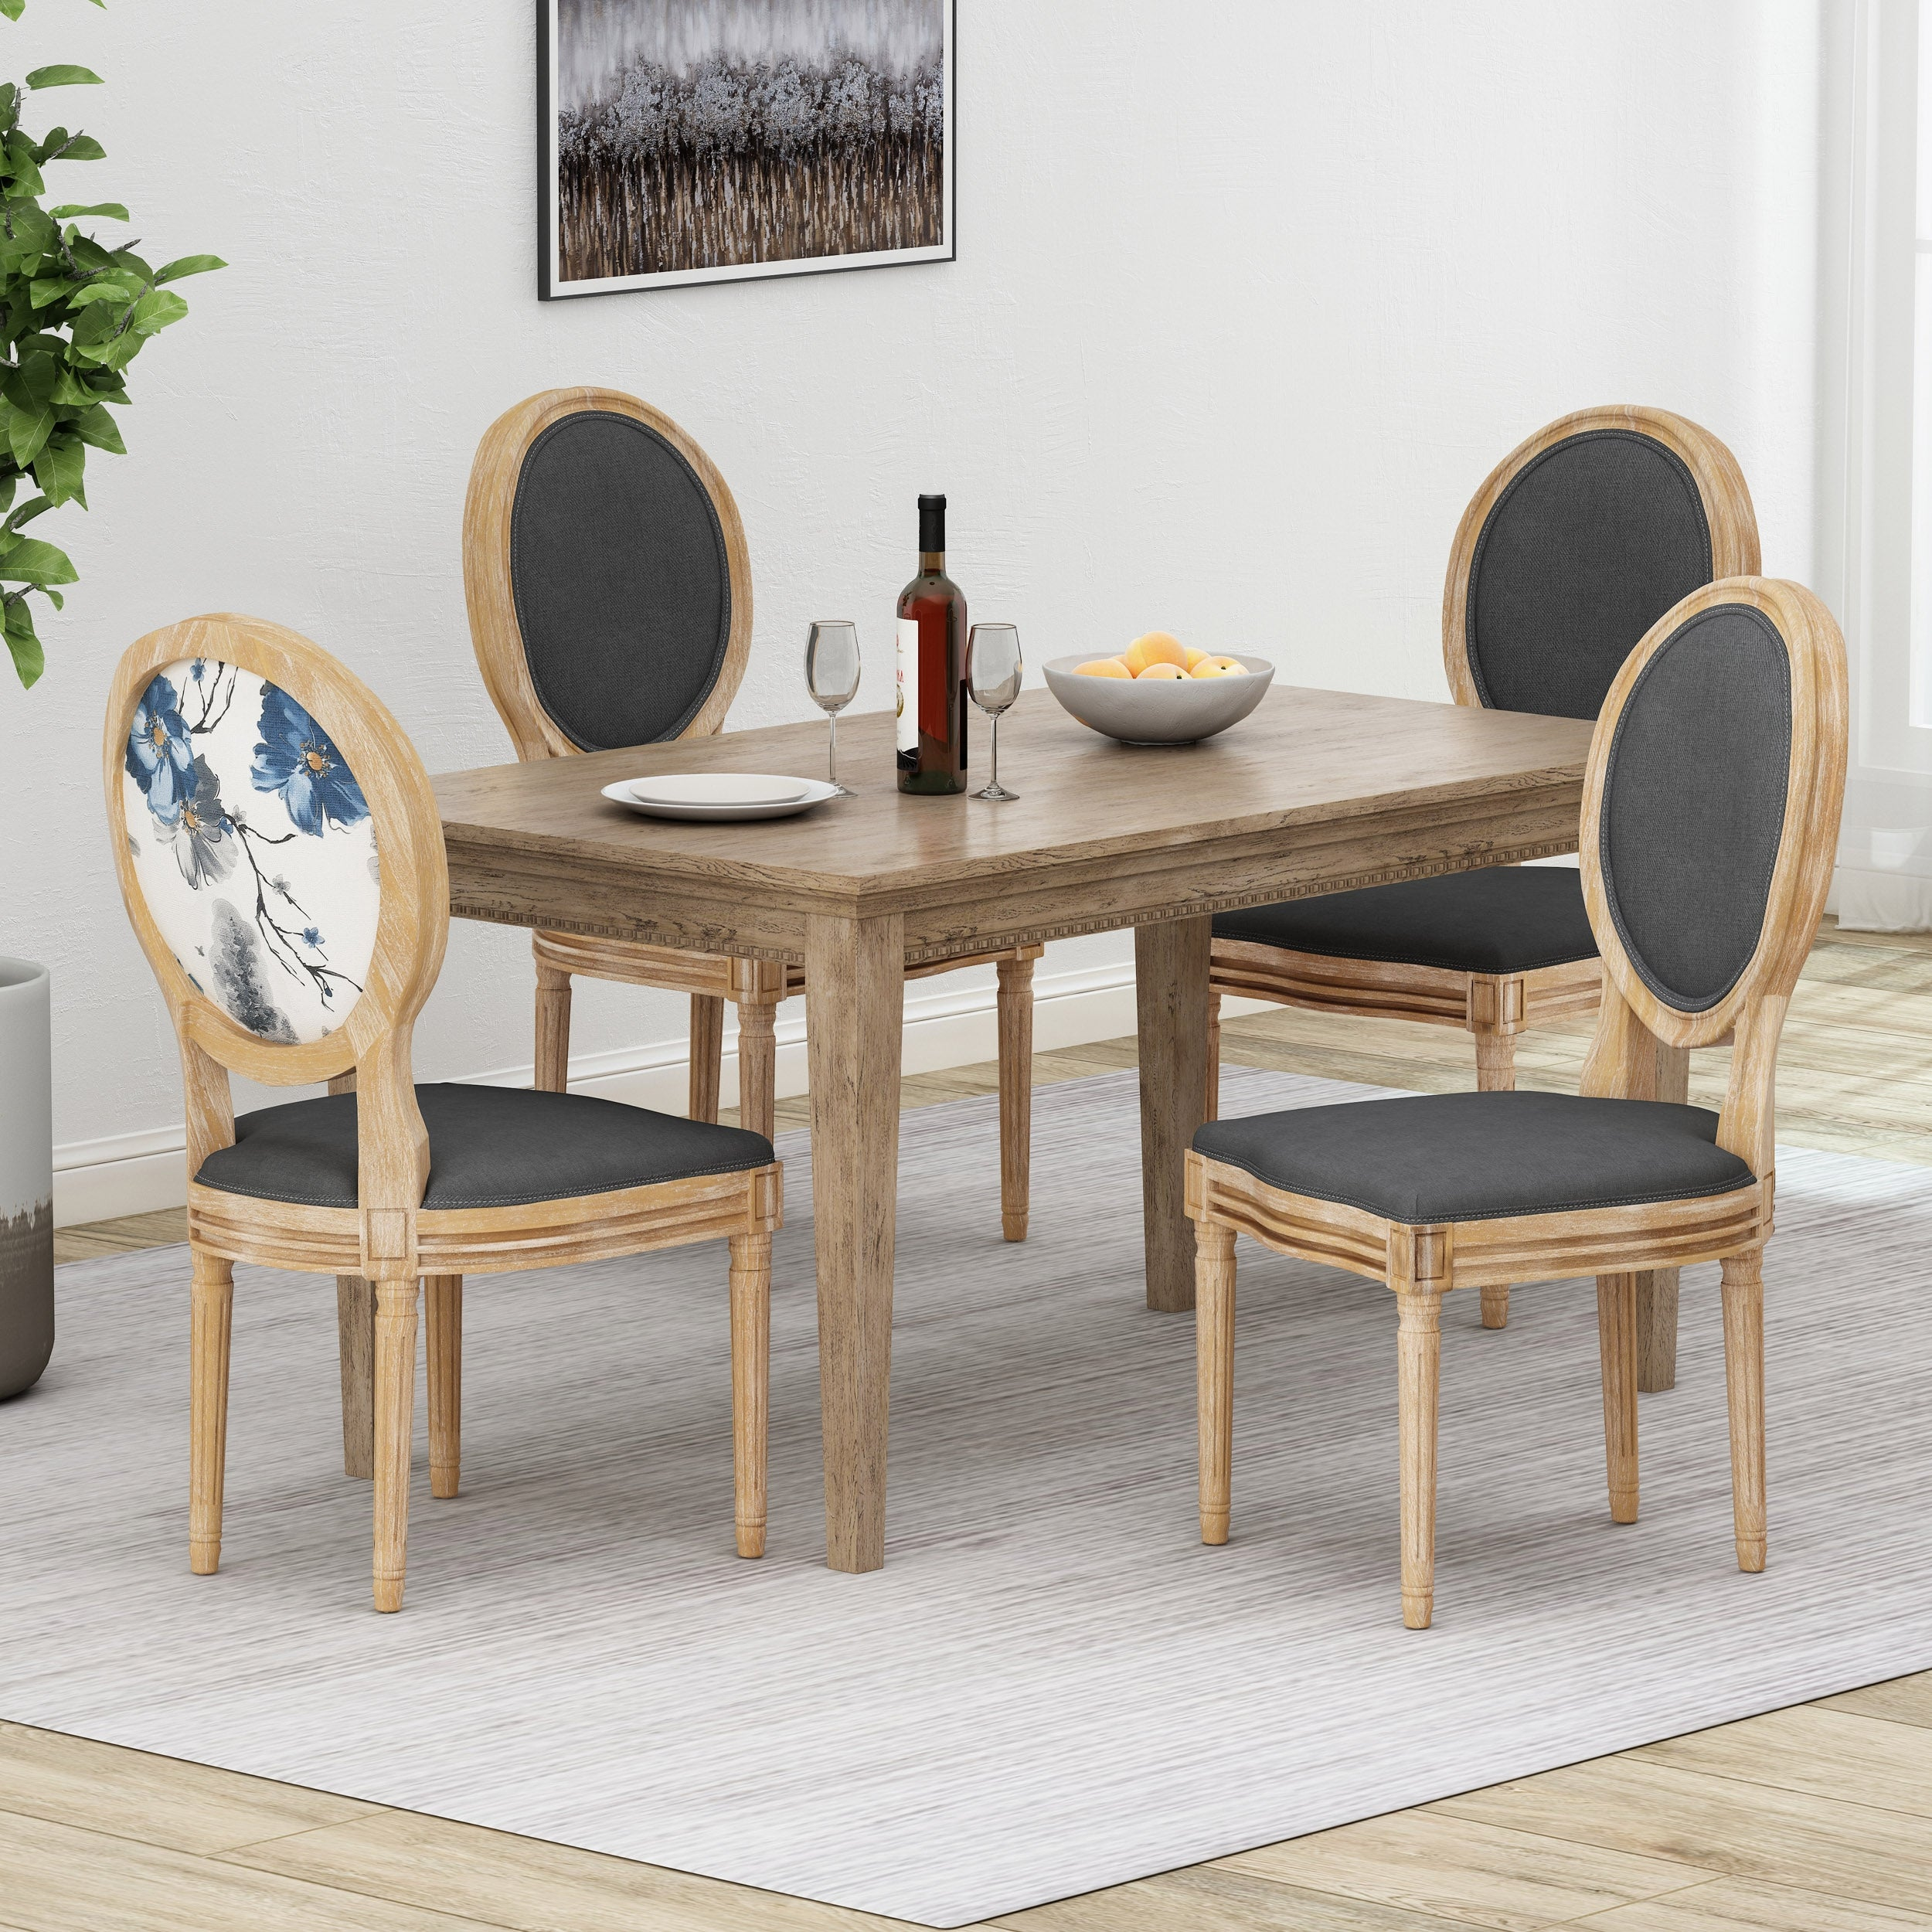 Phinnaeus French Country Dining Chairs Set Of 4 By Christopher Knight Home Overstock 31294586